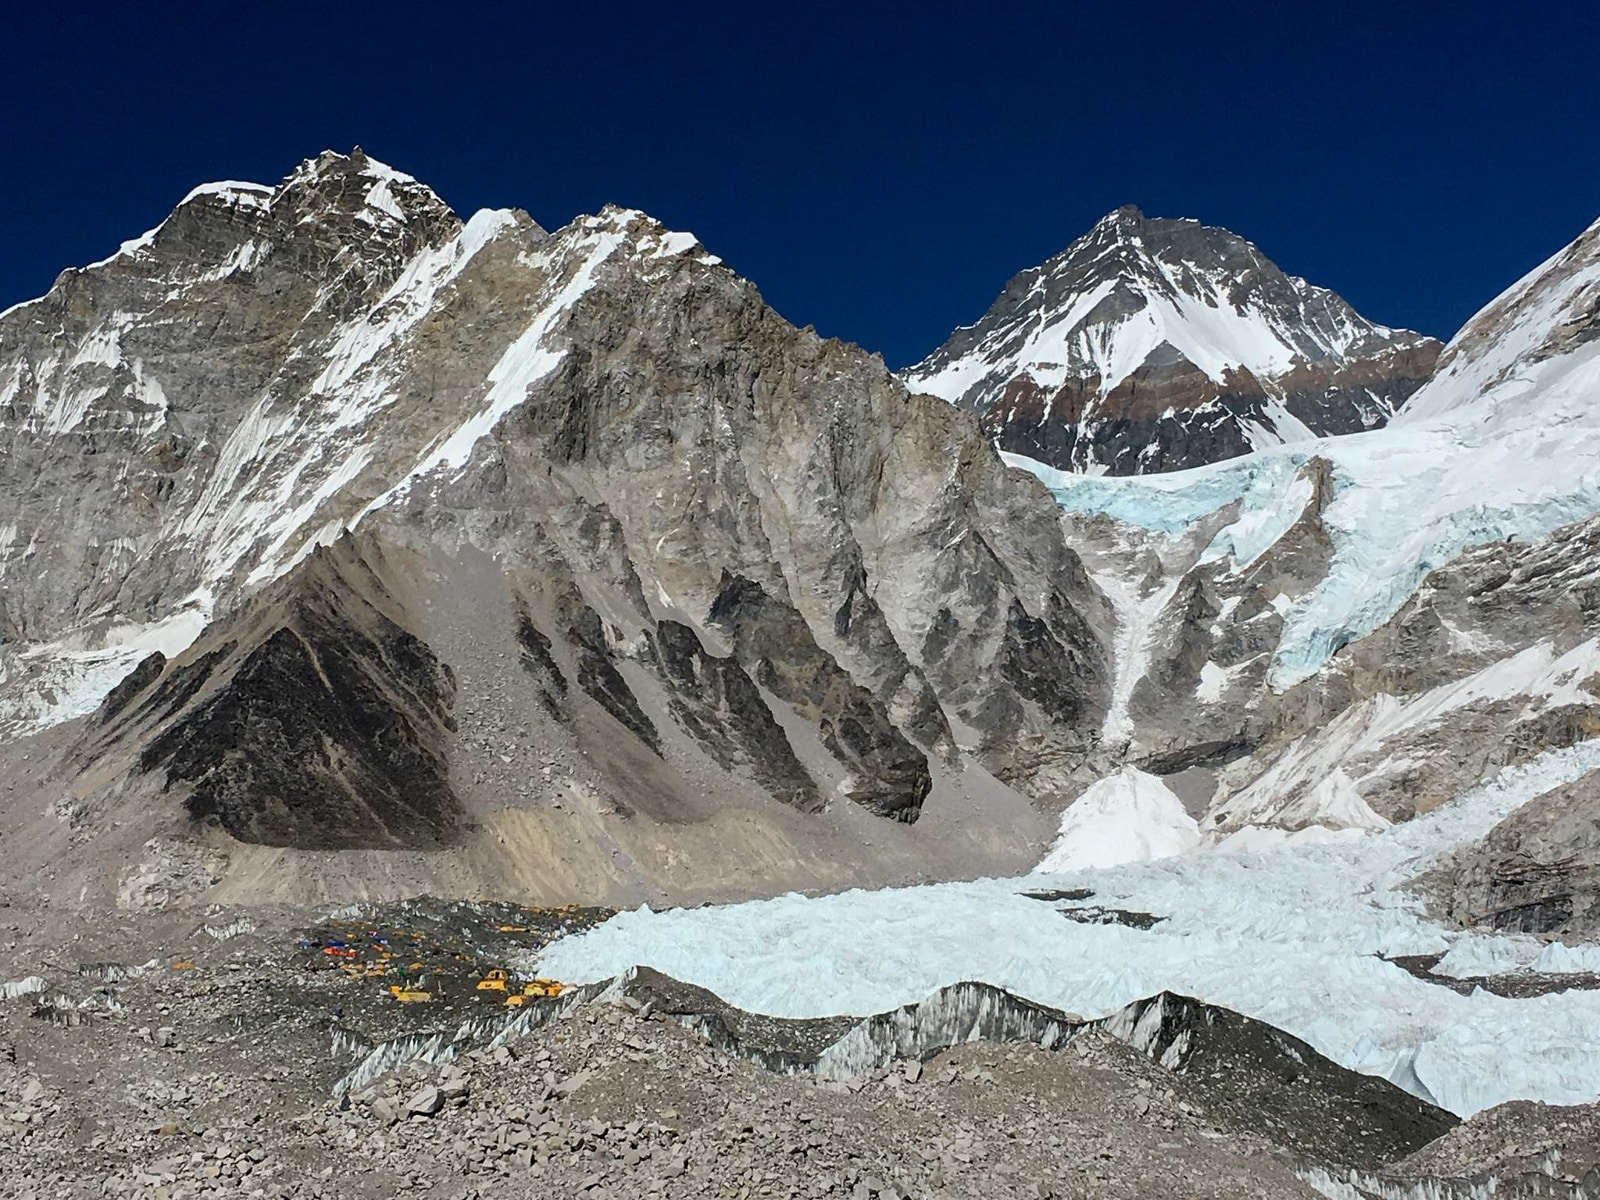 View of a glacier at Everest Base Camp in Nepal